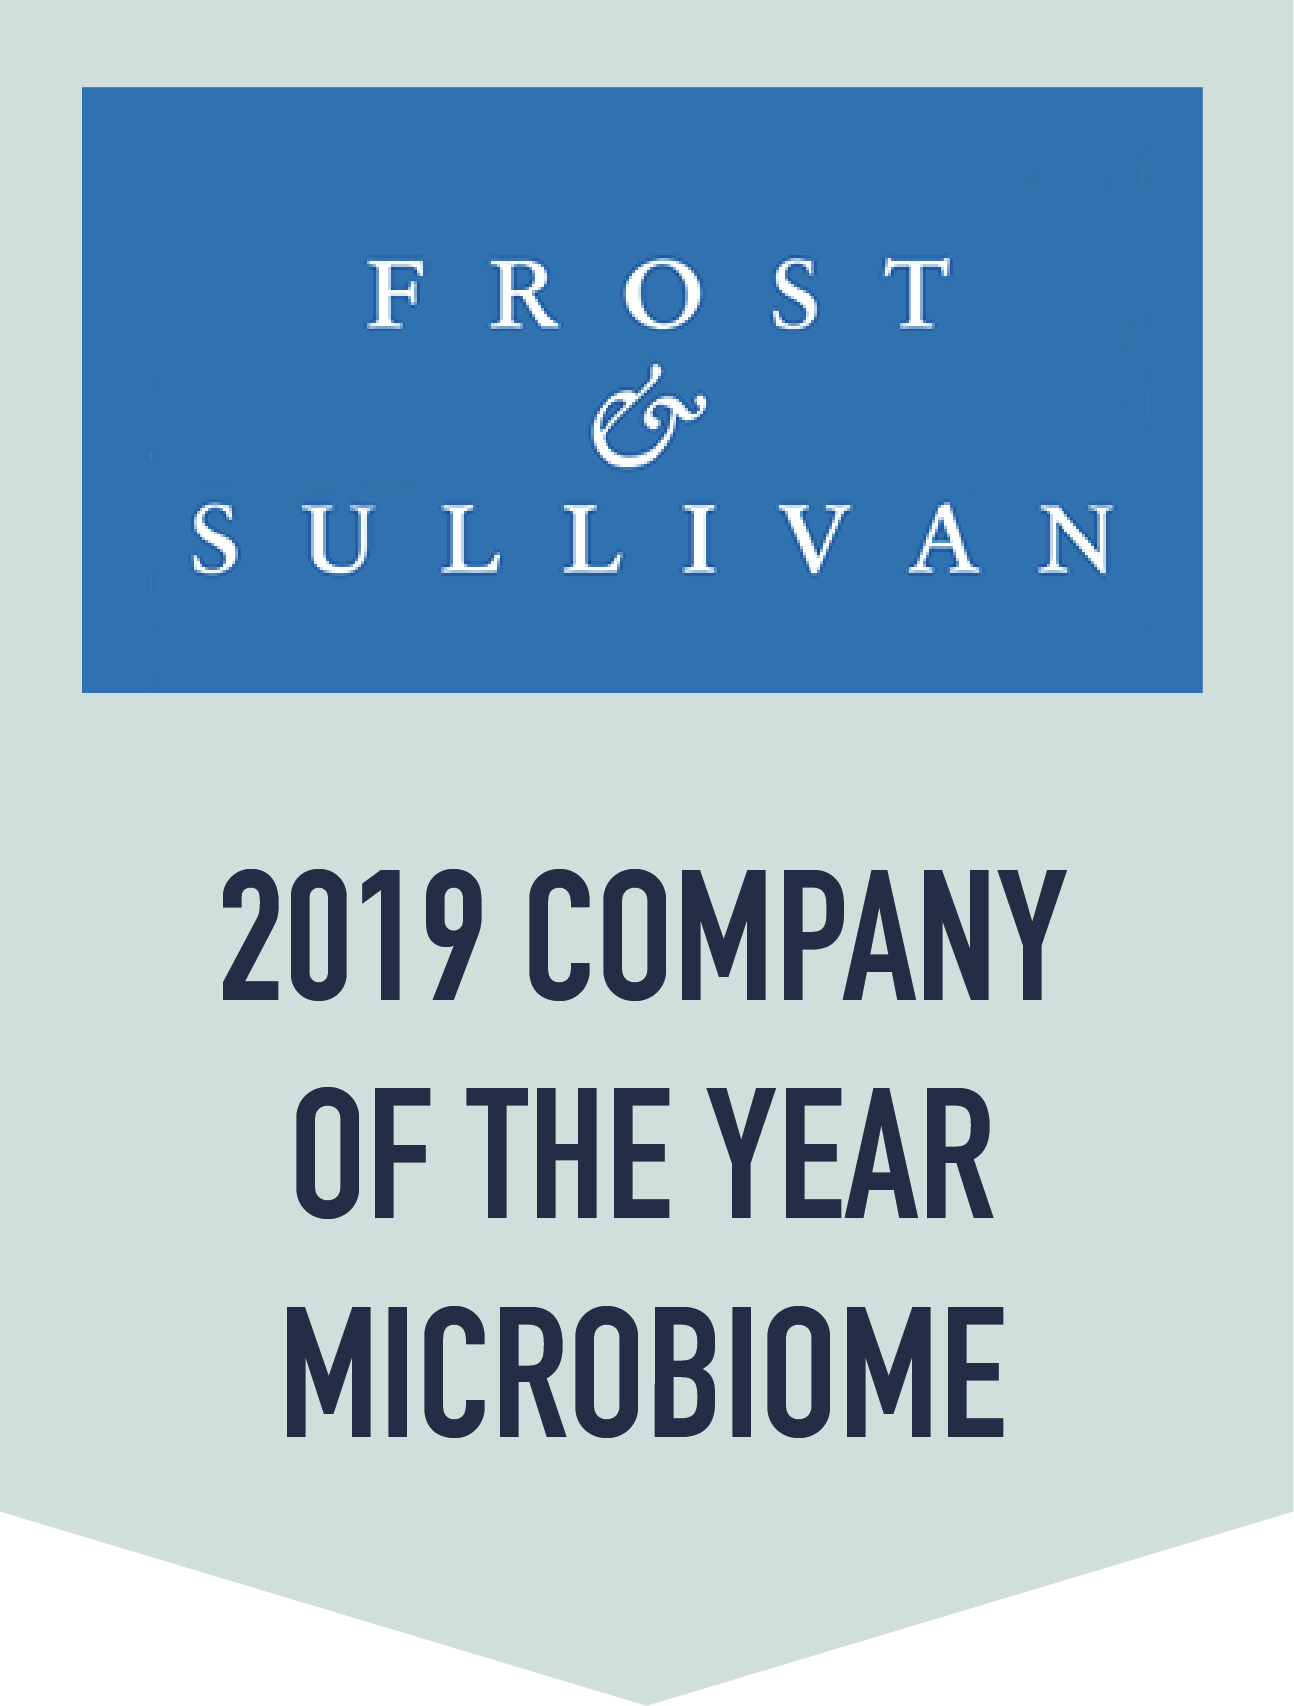 Viome Recognized by Frost & Sullivan as a 2019 Company of the Year for its Mission to Make Chronic